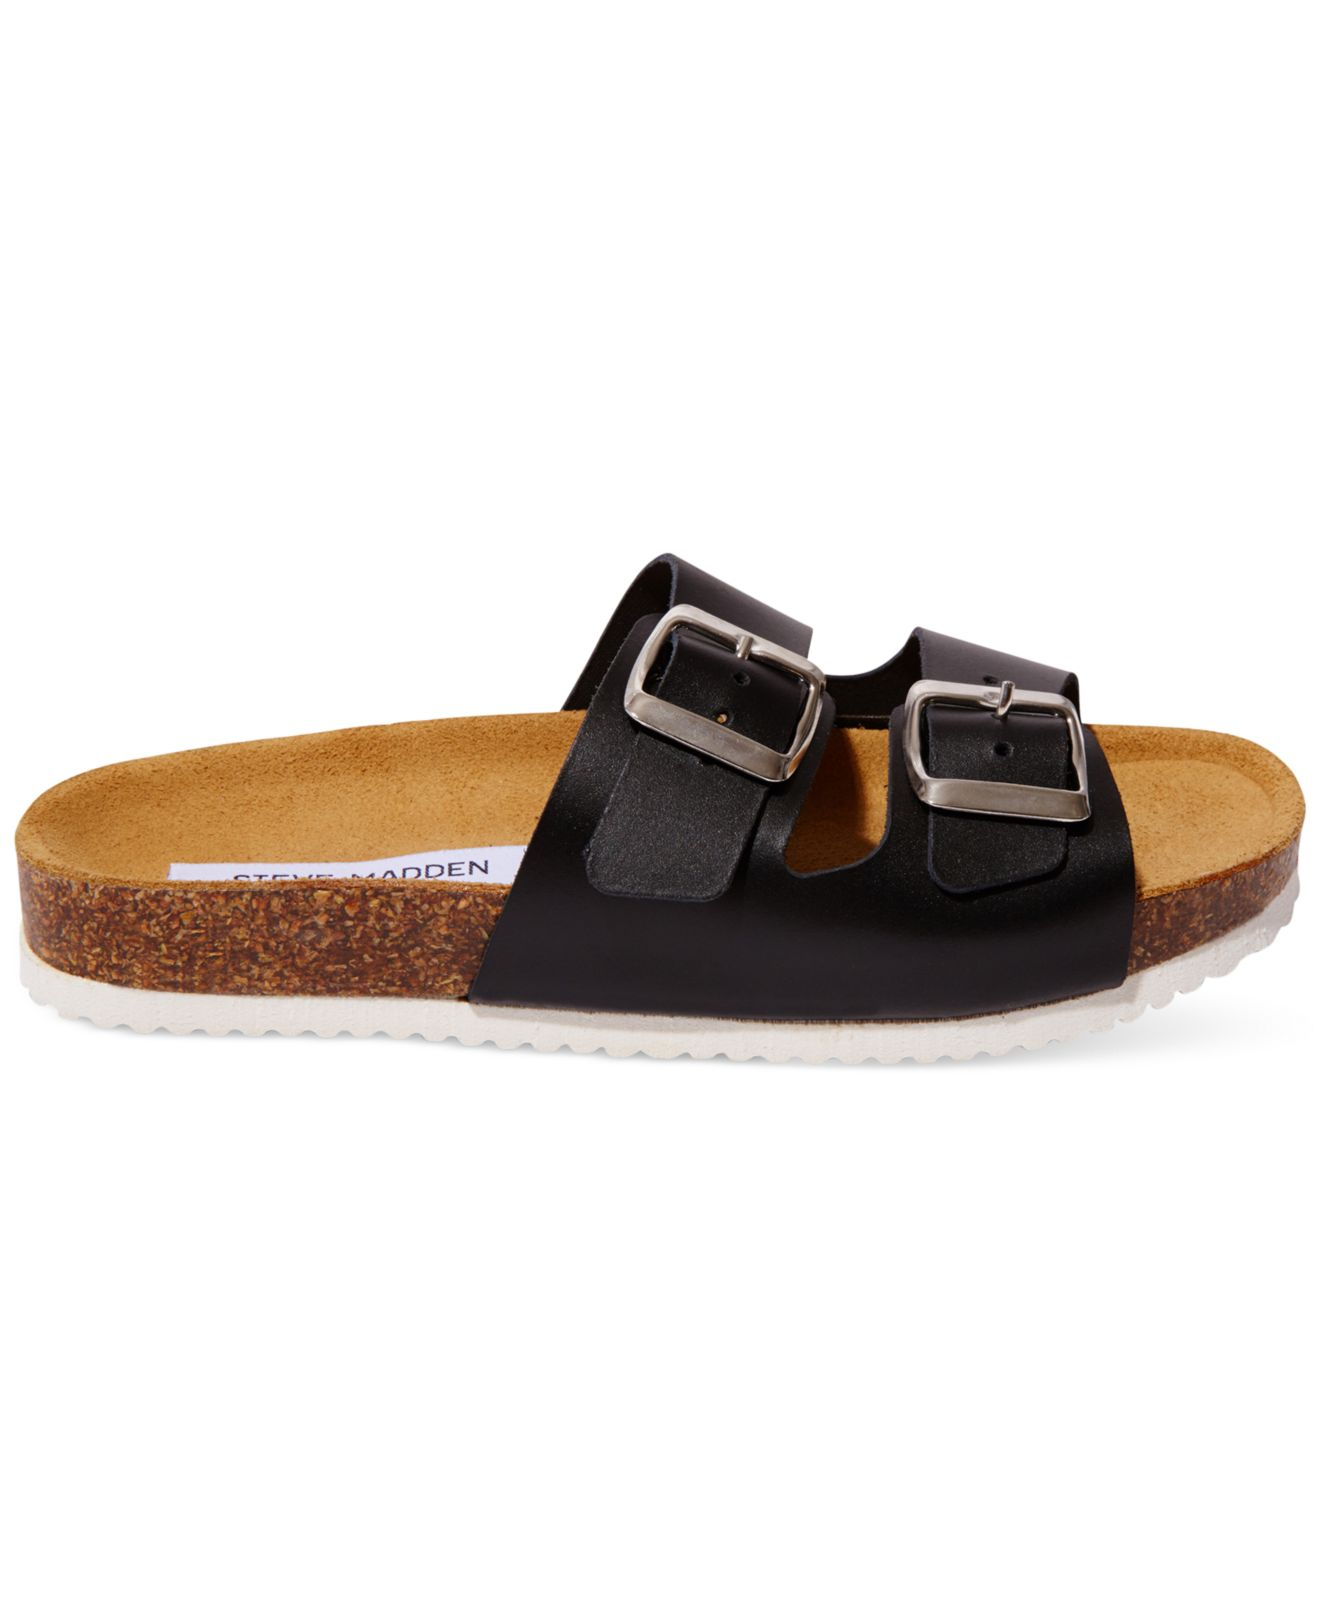 steve madden s bearfoot slide sport sandals in black